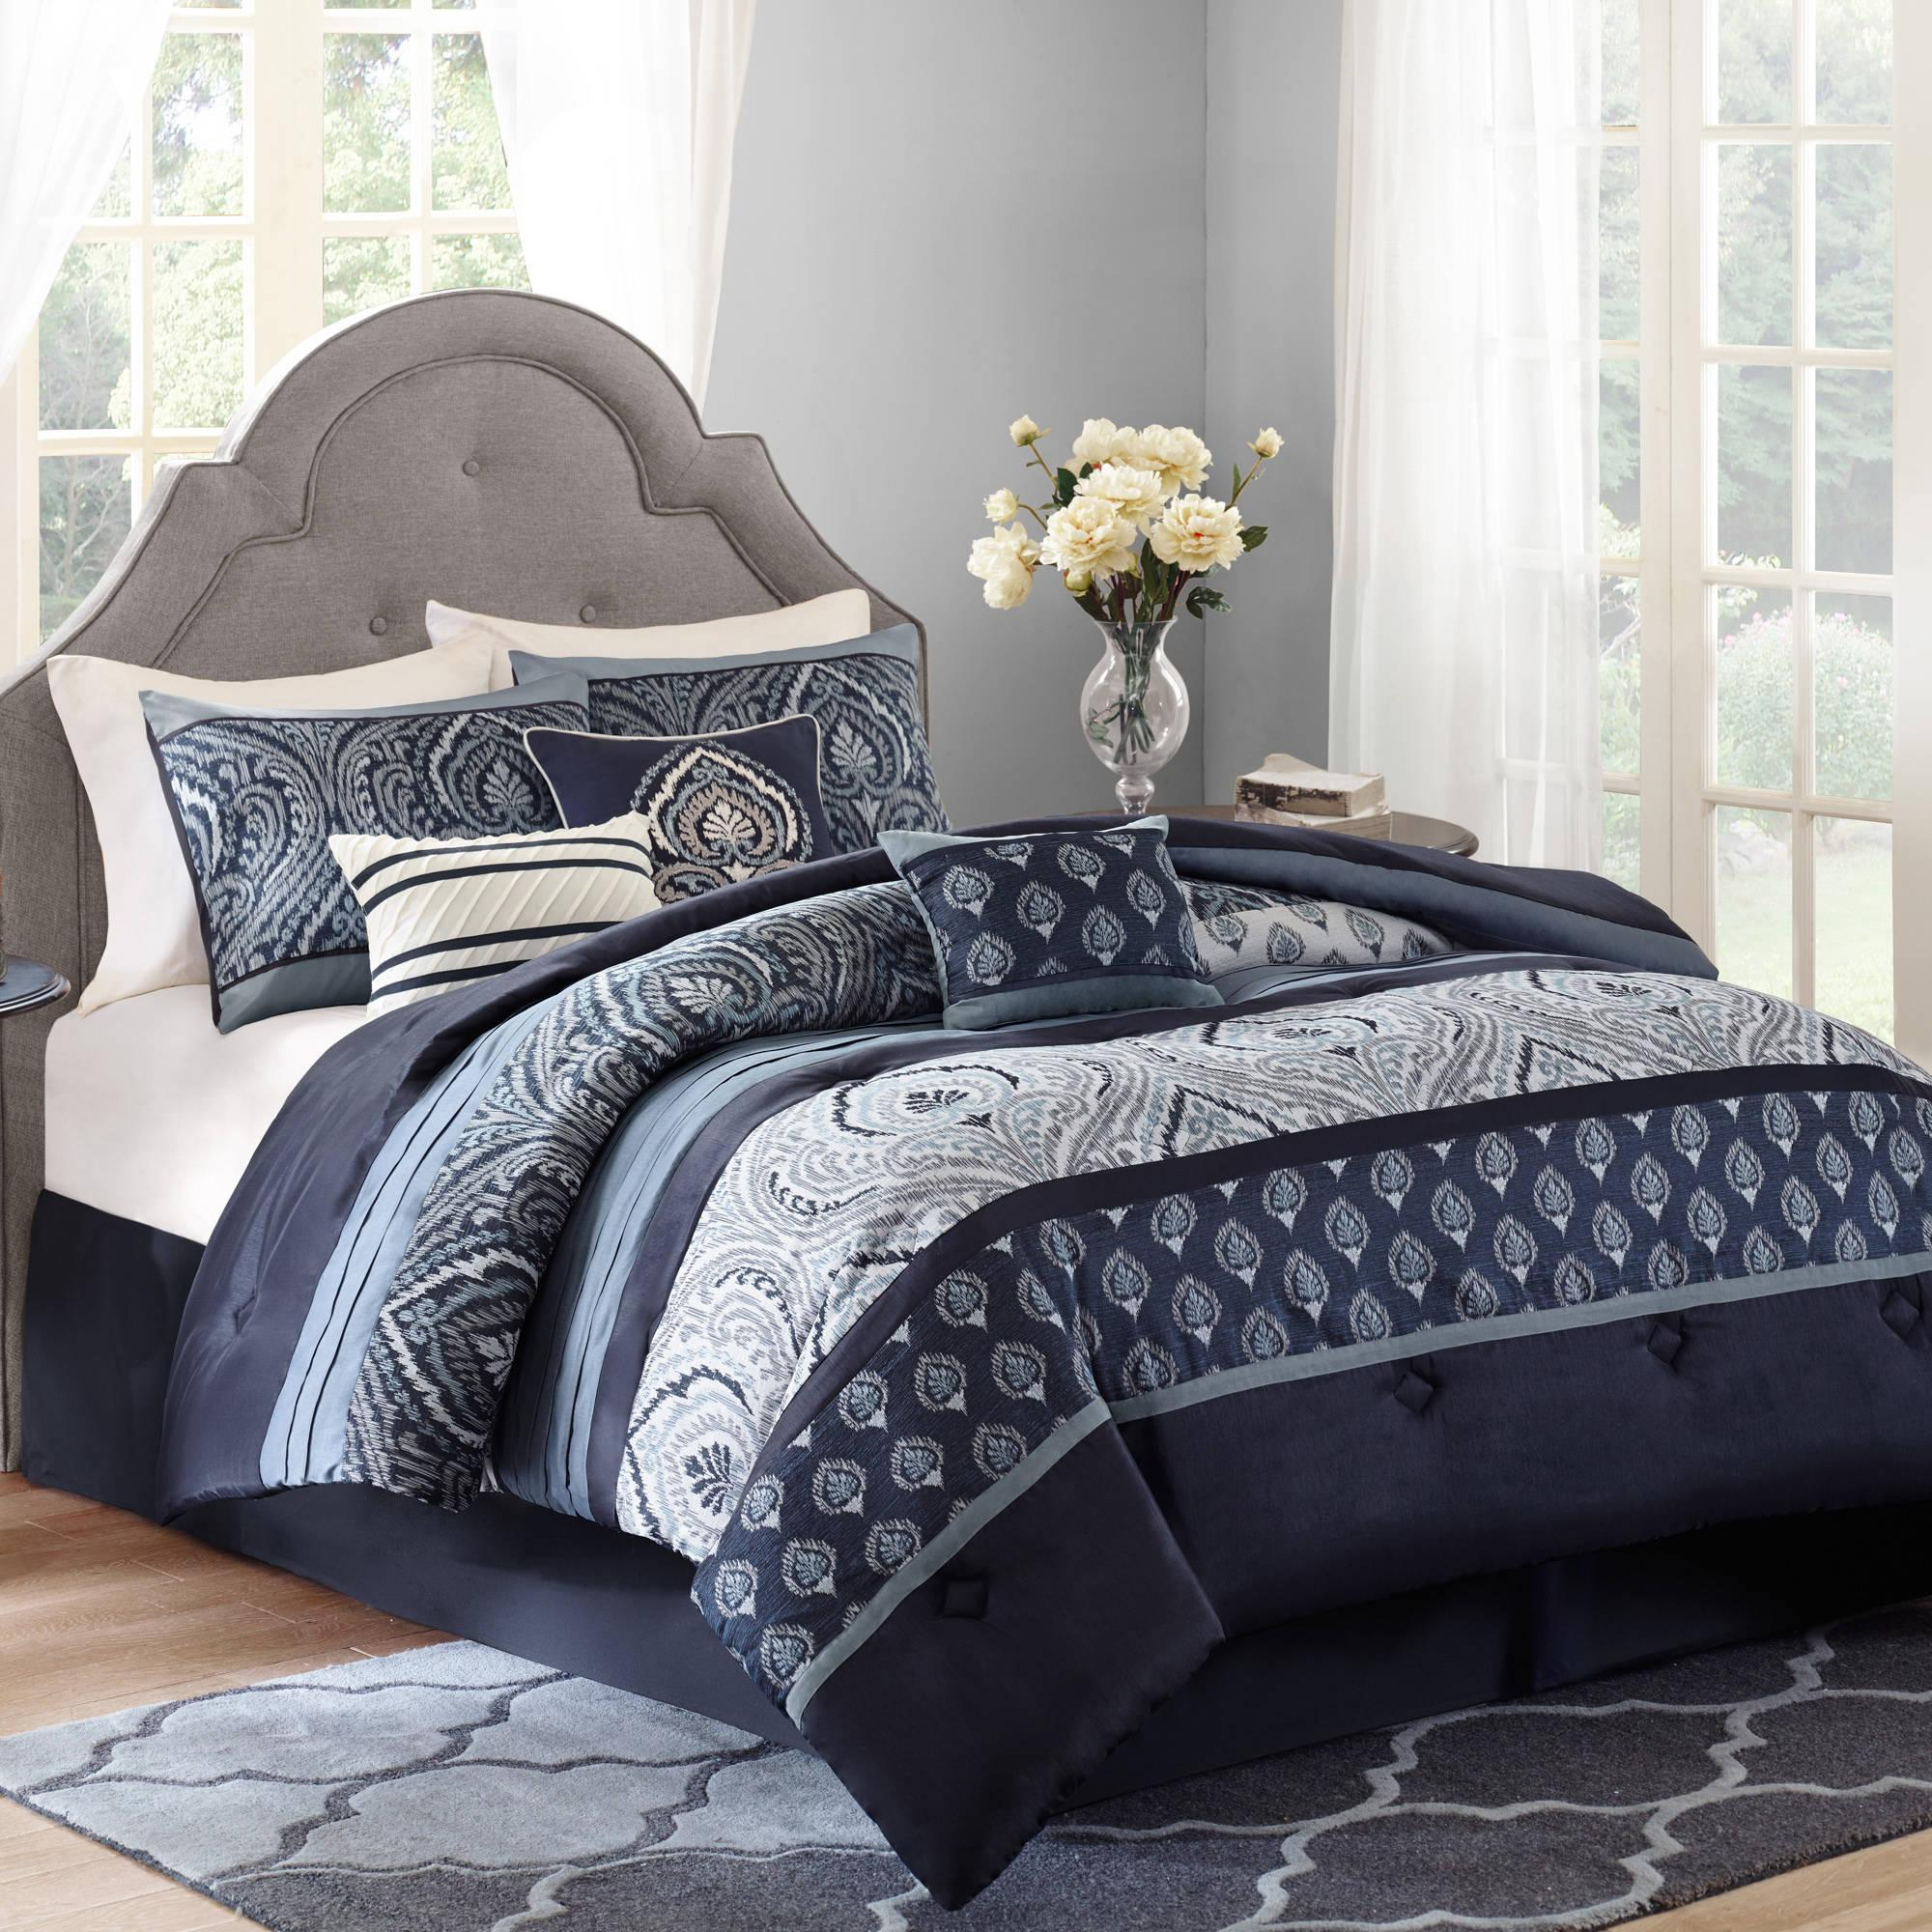 Ordinaire Awesome Dark Blue Better Homes And Garden Comforter Sets And Rug With White  Curtains